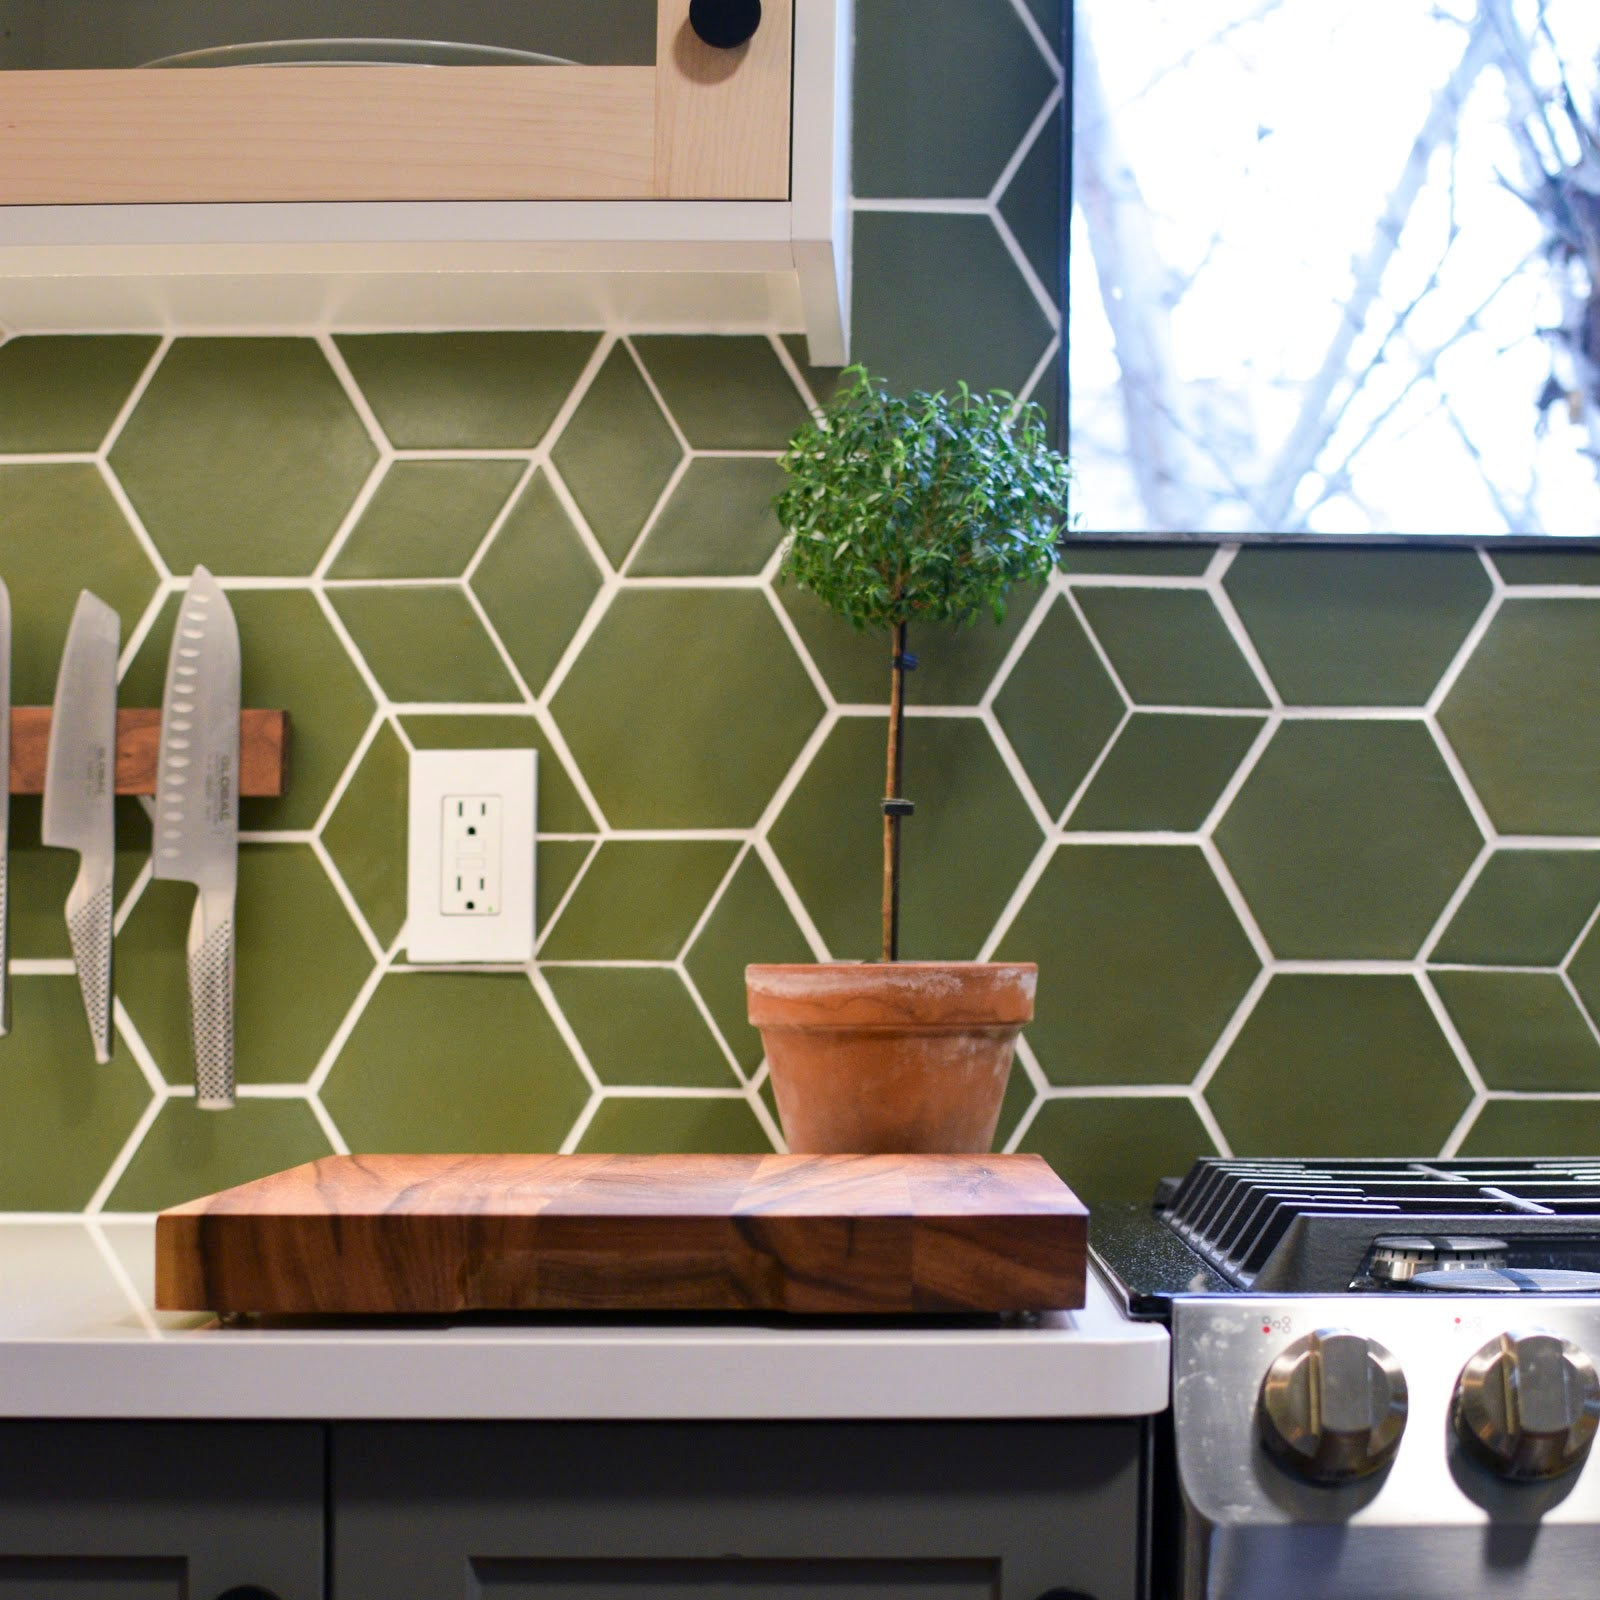 Avocado Green Kitchen Backsplash Mixed and Matched Tile